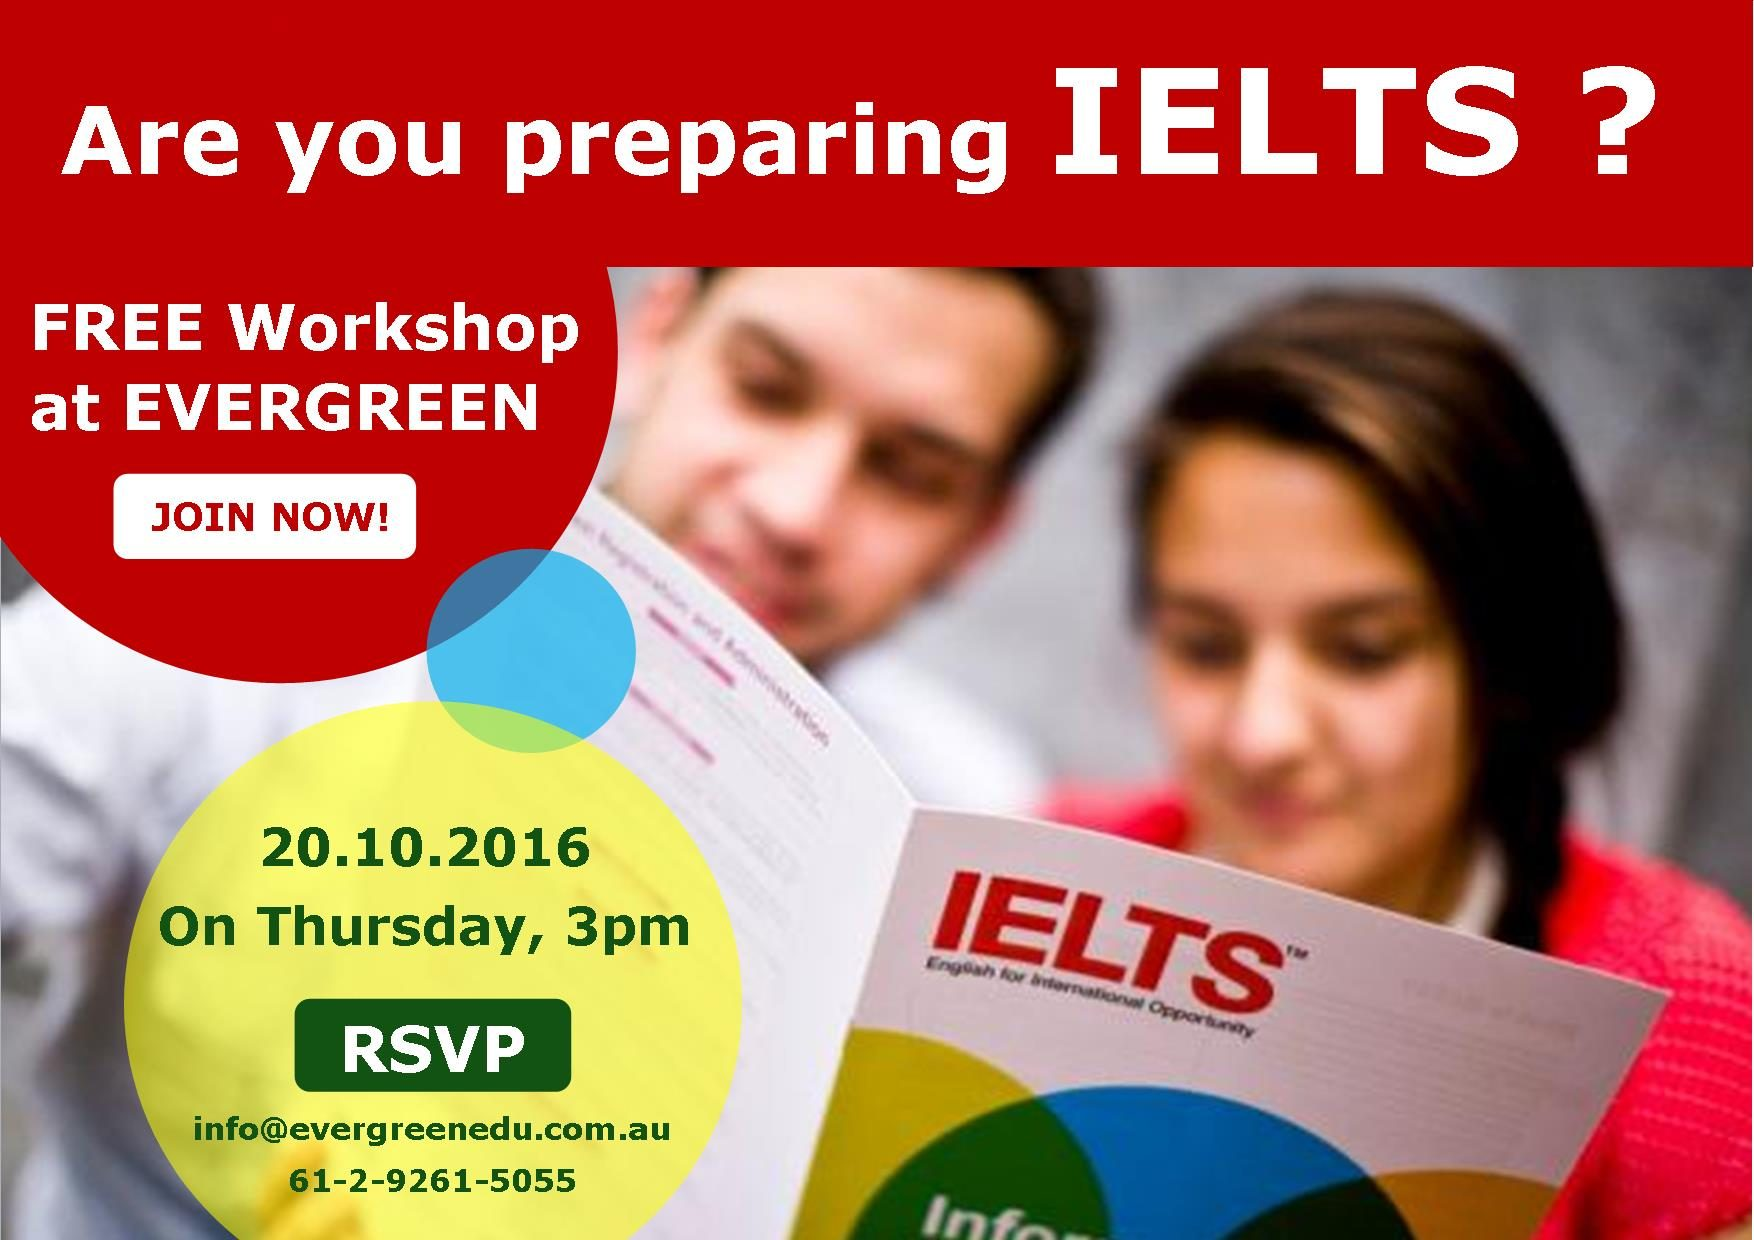 IELTS free workshop.jpg